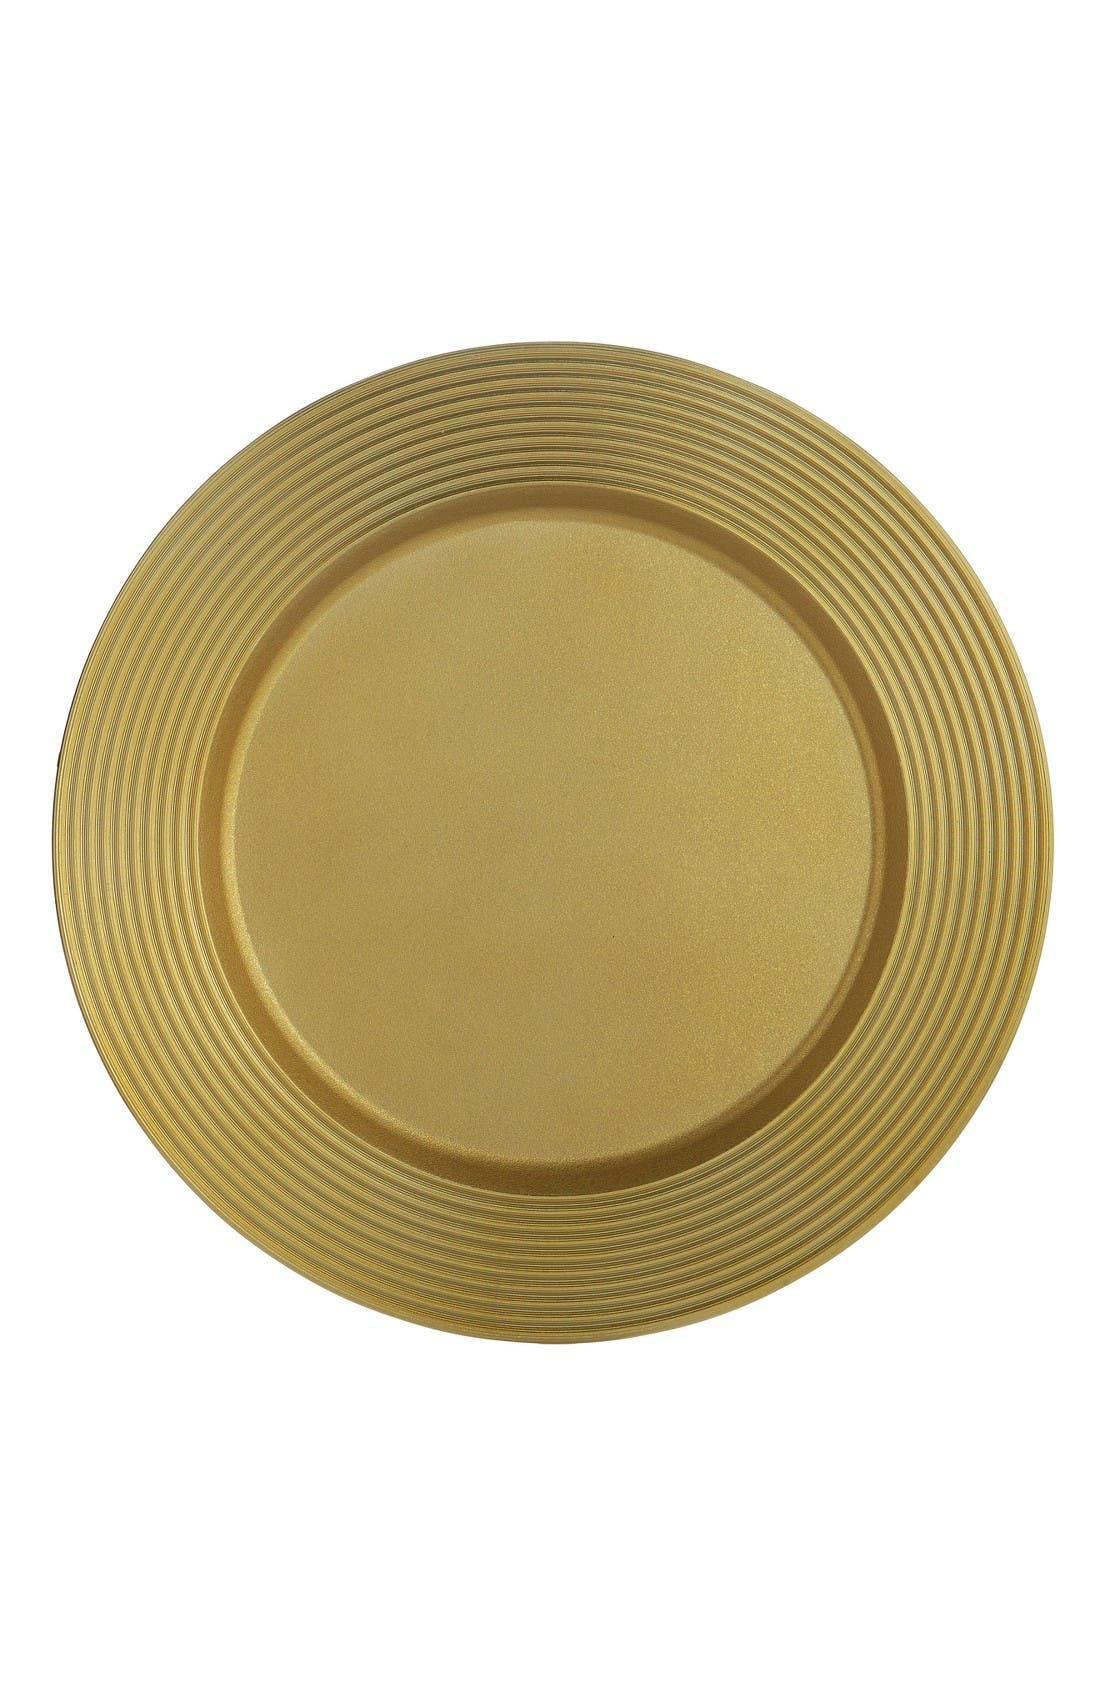 Alternate Image 1 Selected - Michael Aram Wheat Charger Plate